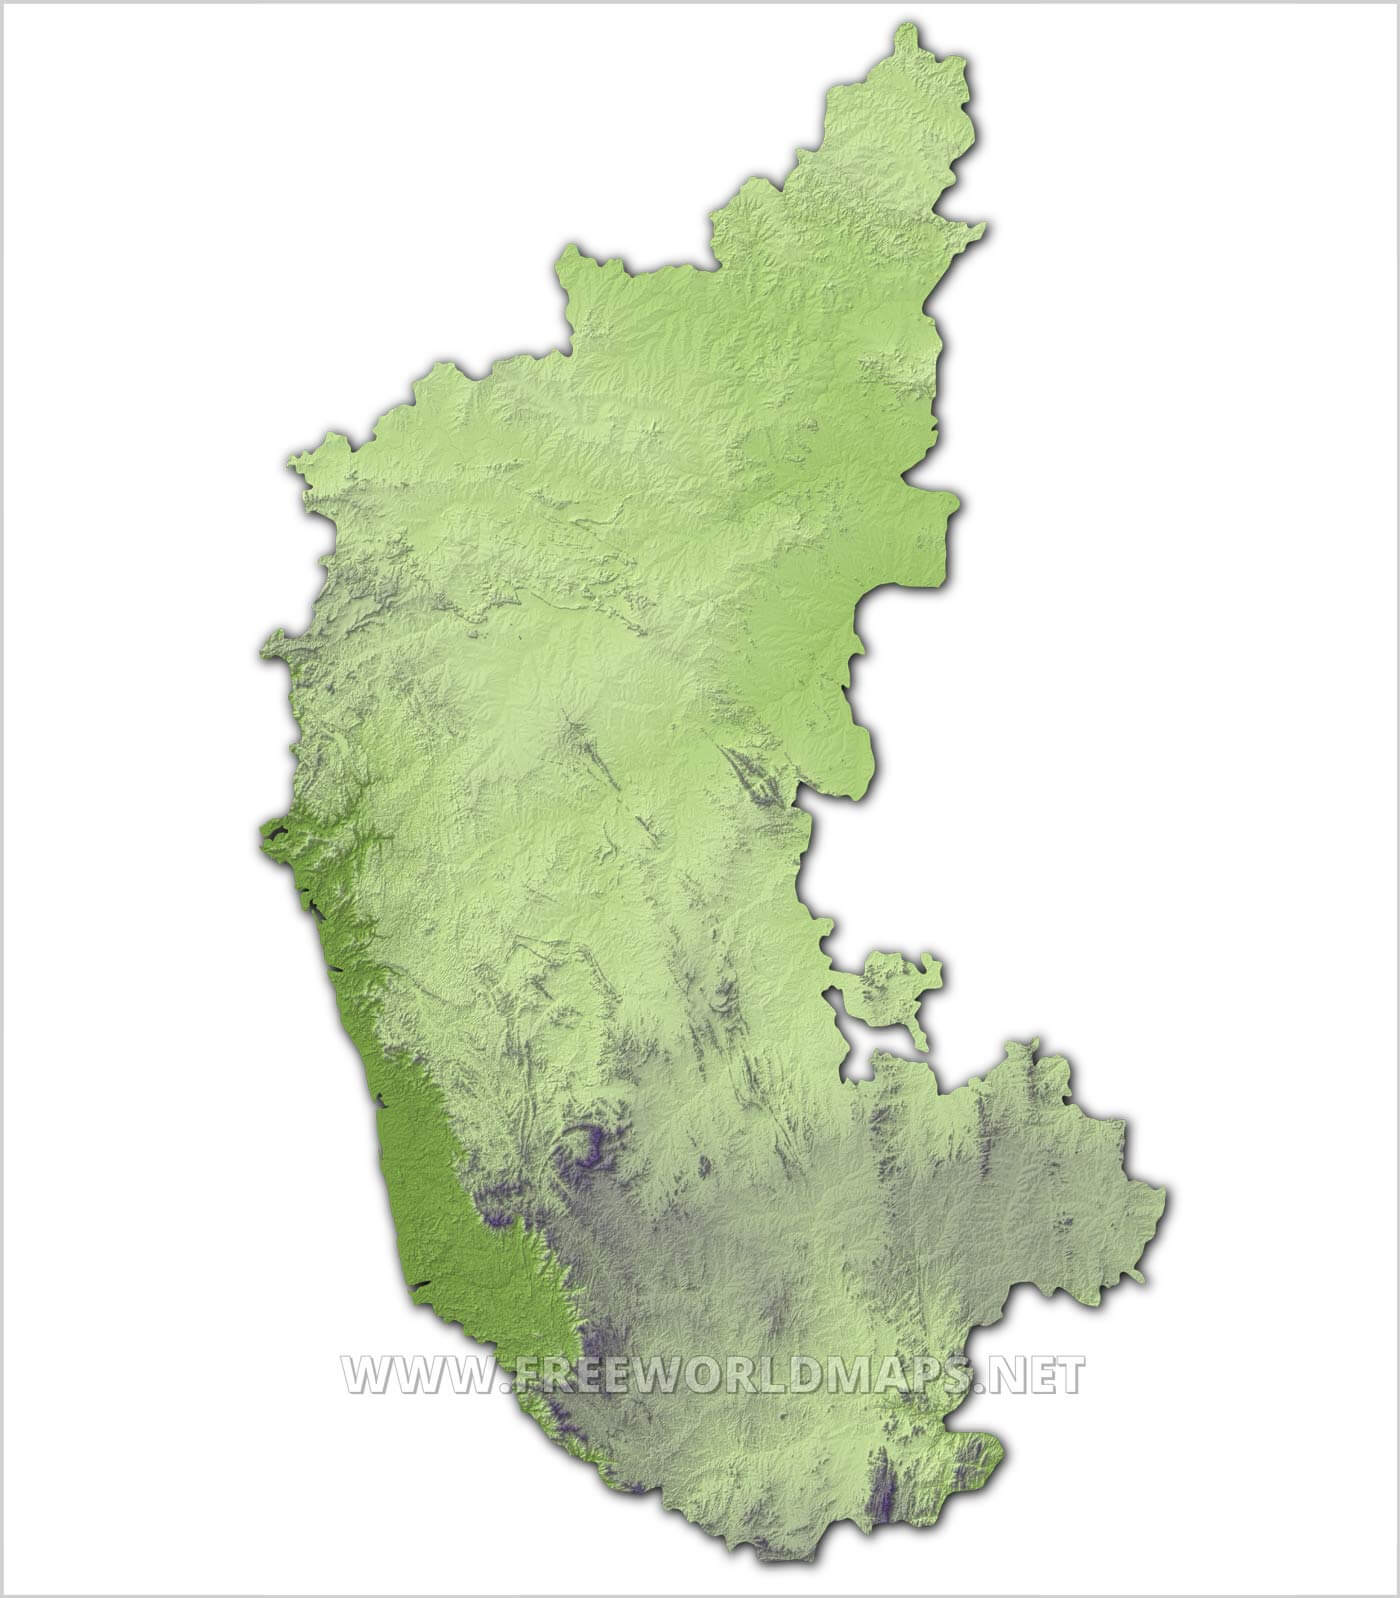 Karnataka Maps on andhra pradesh map, sri lanka map, m.p. map, gujarat map, union territory map, maharashtra map, bangalore map, haryana map, telangana map, uttar pradesh map, west bengal map, tamilnadu map, uttarakhand map, kashmir map, kerala map, goa map, india map, delhi map, pondicherry map, rajasthan map,